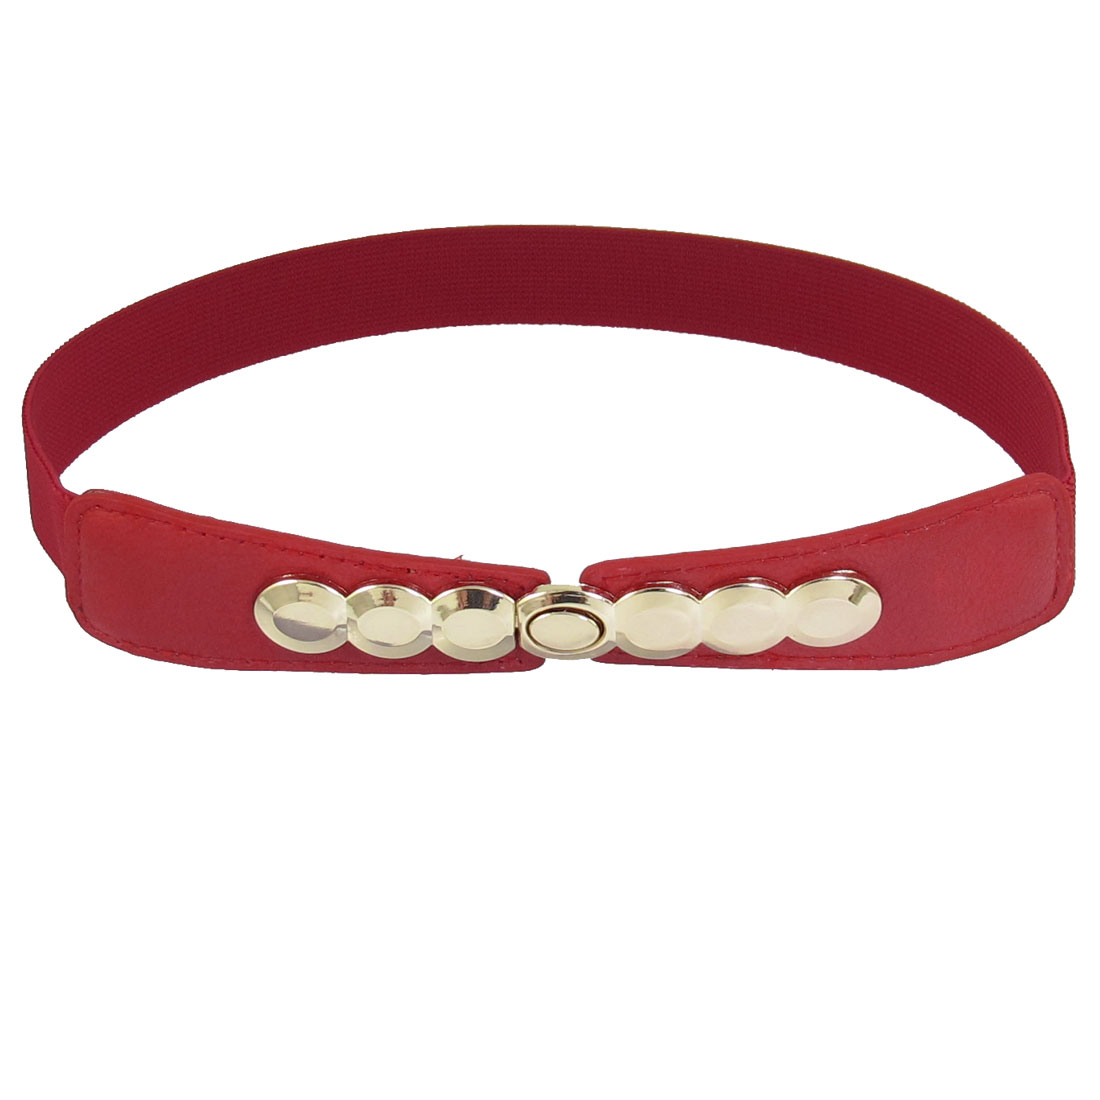 Women Ladies Oval Shape Metal Interlocking Buckle Red Elastic Waistband Belt